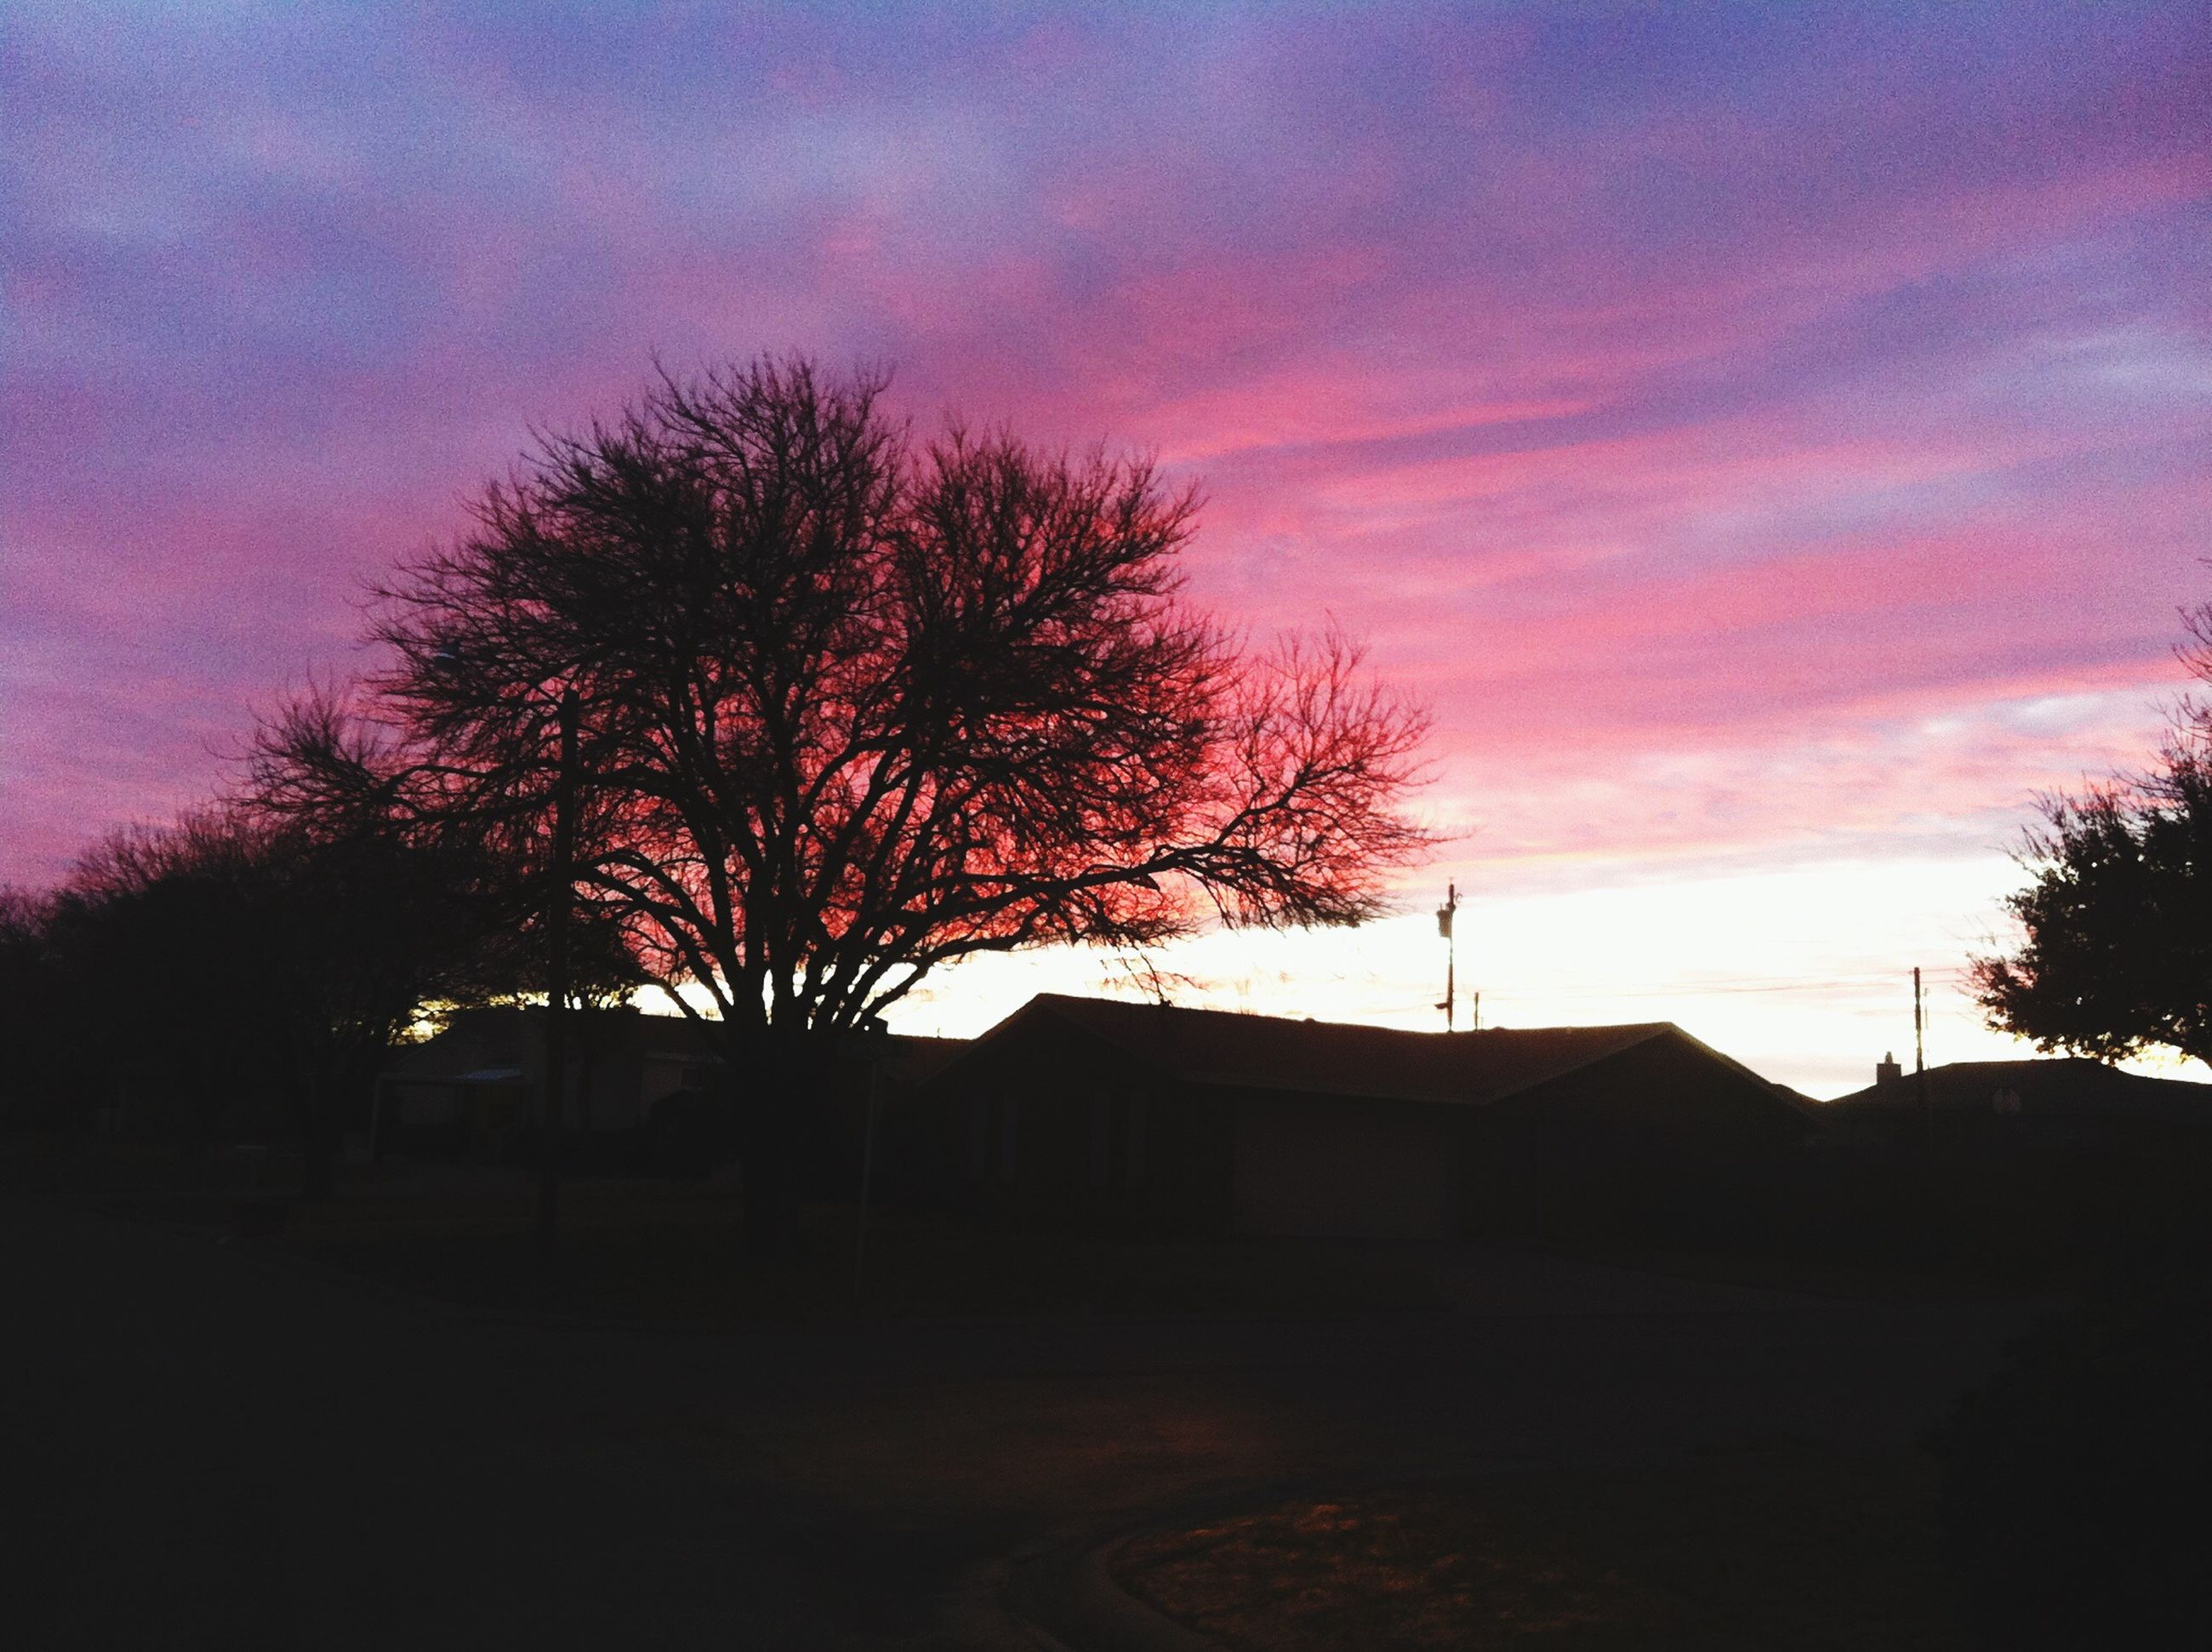 tree, sky, silhouette, sunset, built structure, architecture, cloud - sky, building exterior, bare tree, house, dusk, beauty in nature, nature, tranquility, cloud, low angle view, scenics, cloudy, tranquil scene, outdoors